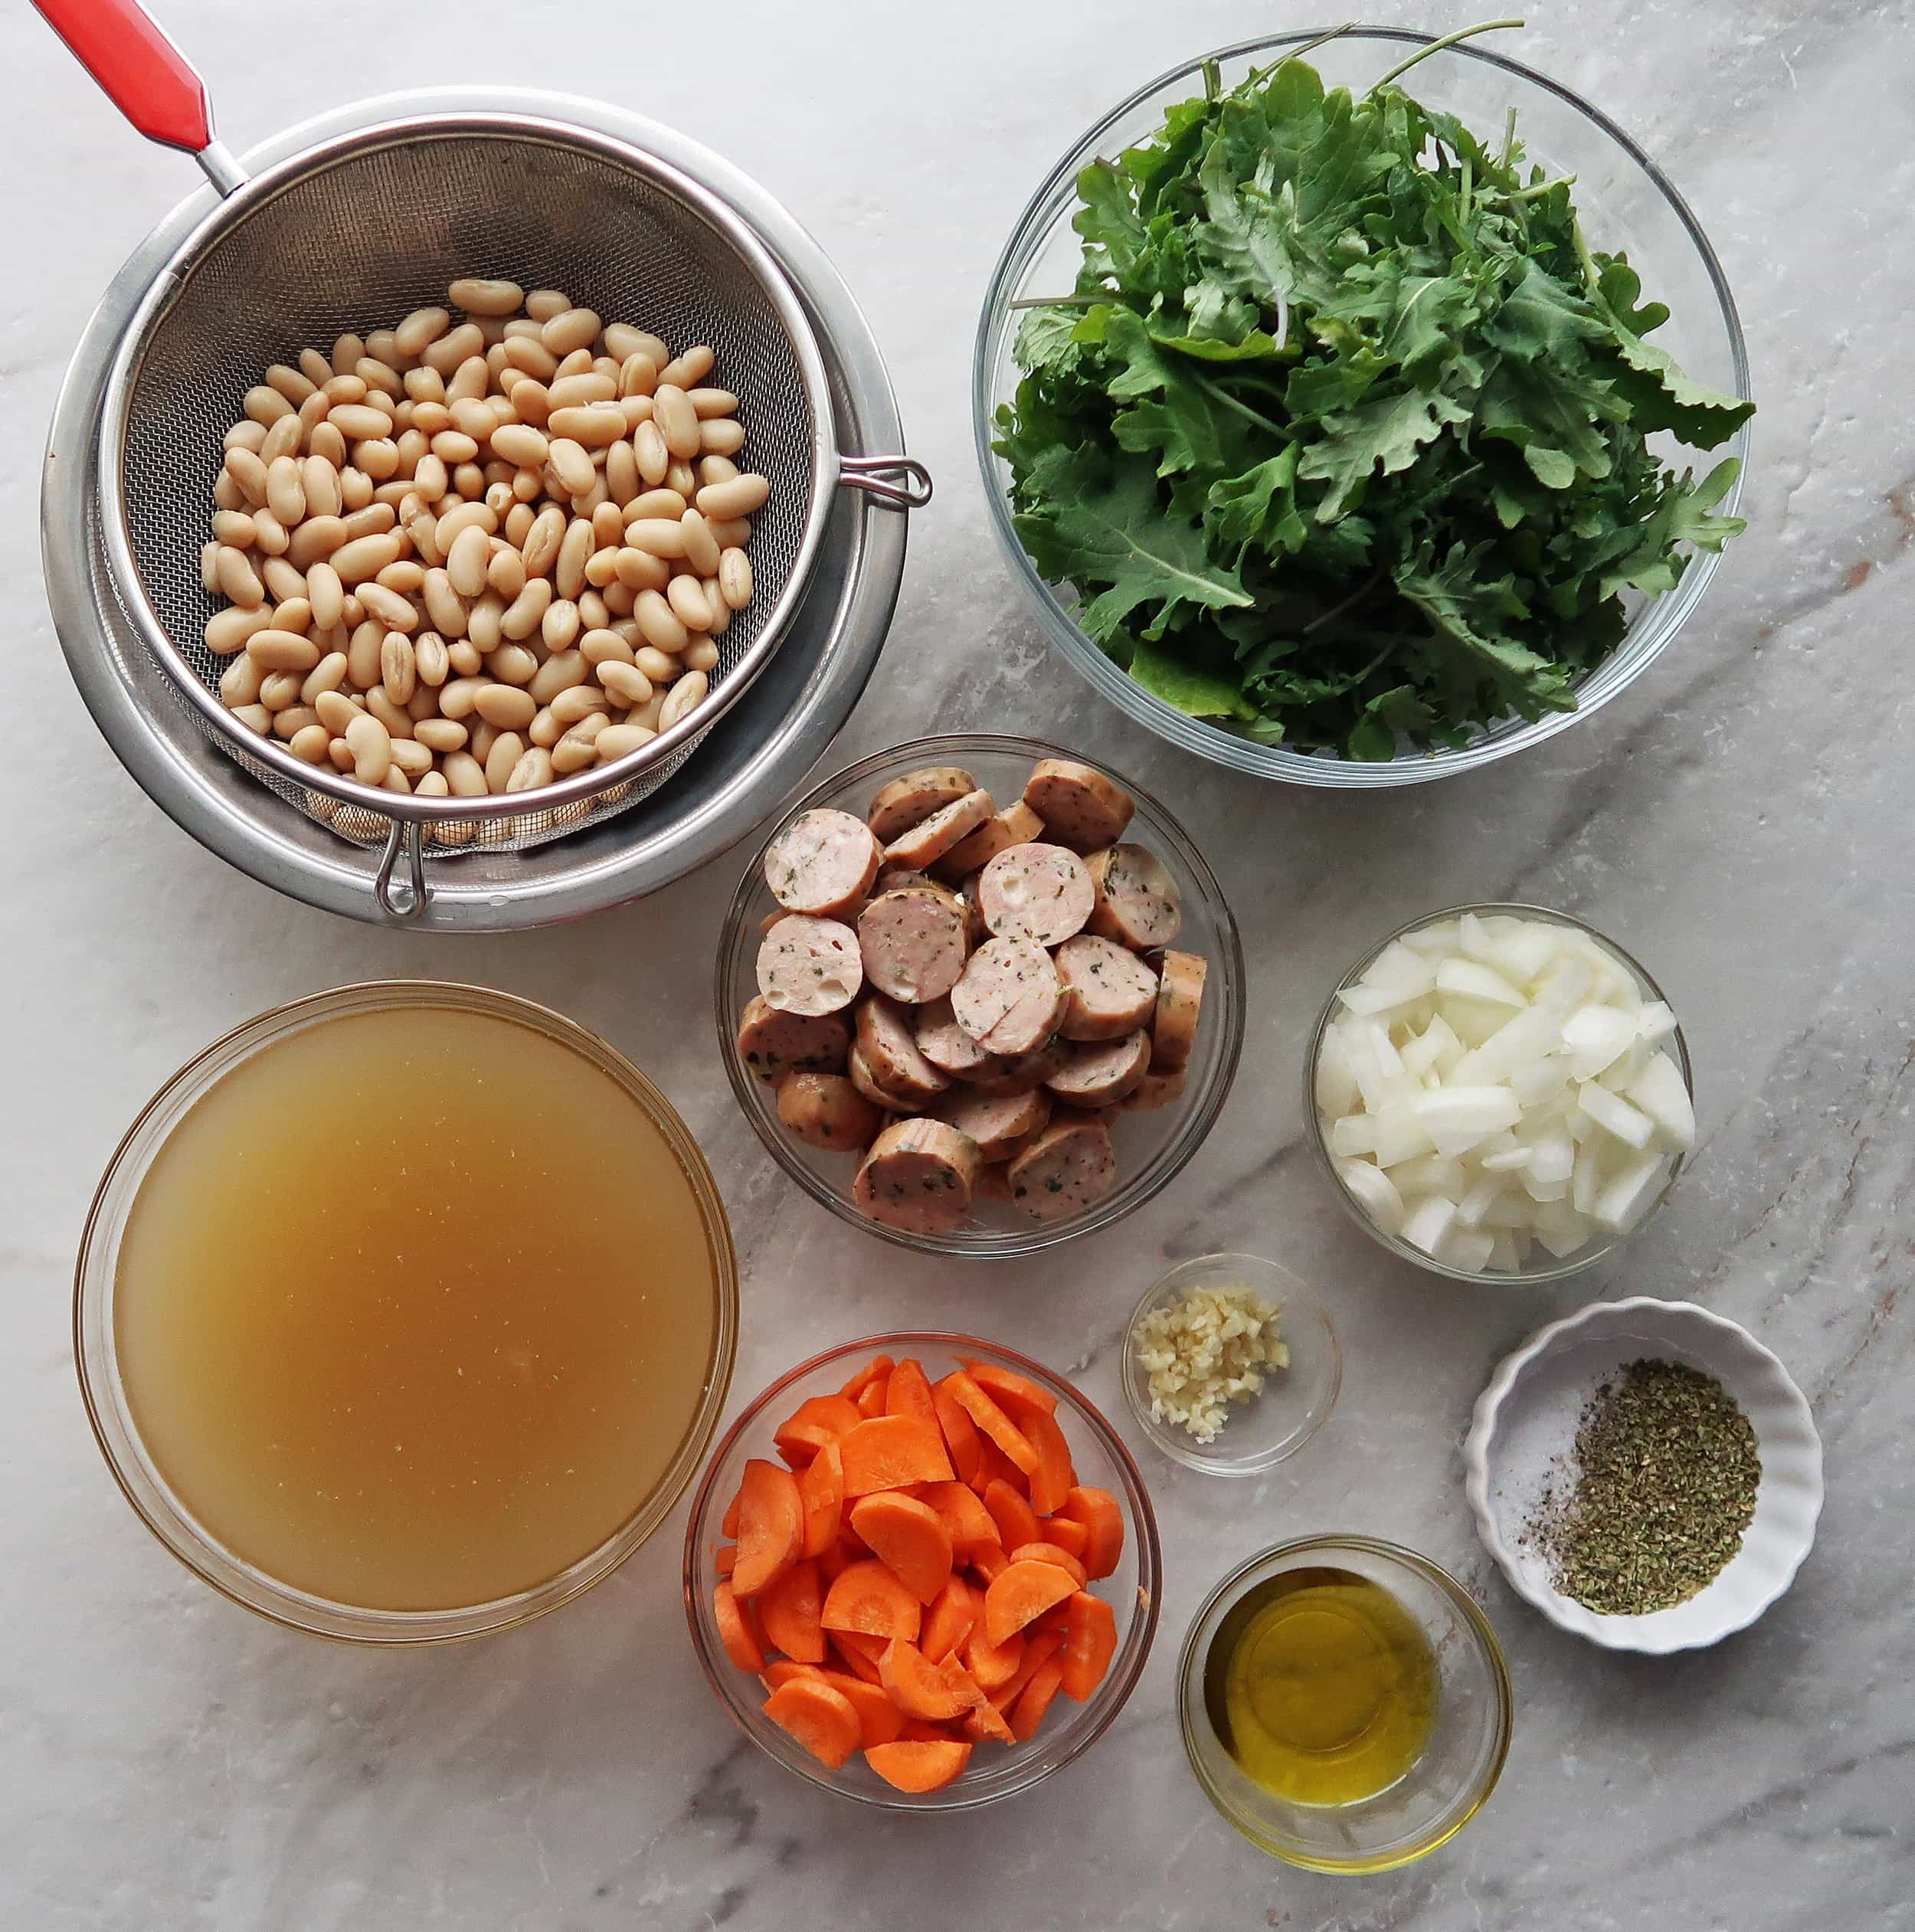 Carrots, onions, sausages slices, white beans, kale, and broth.